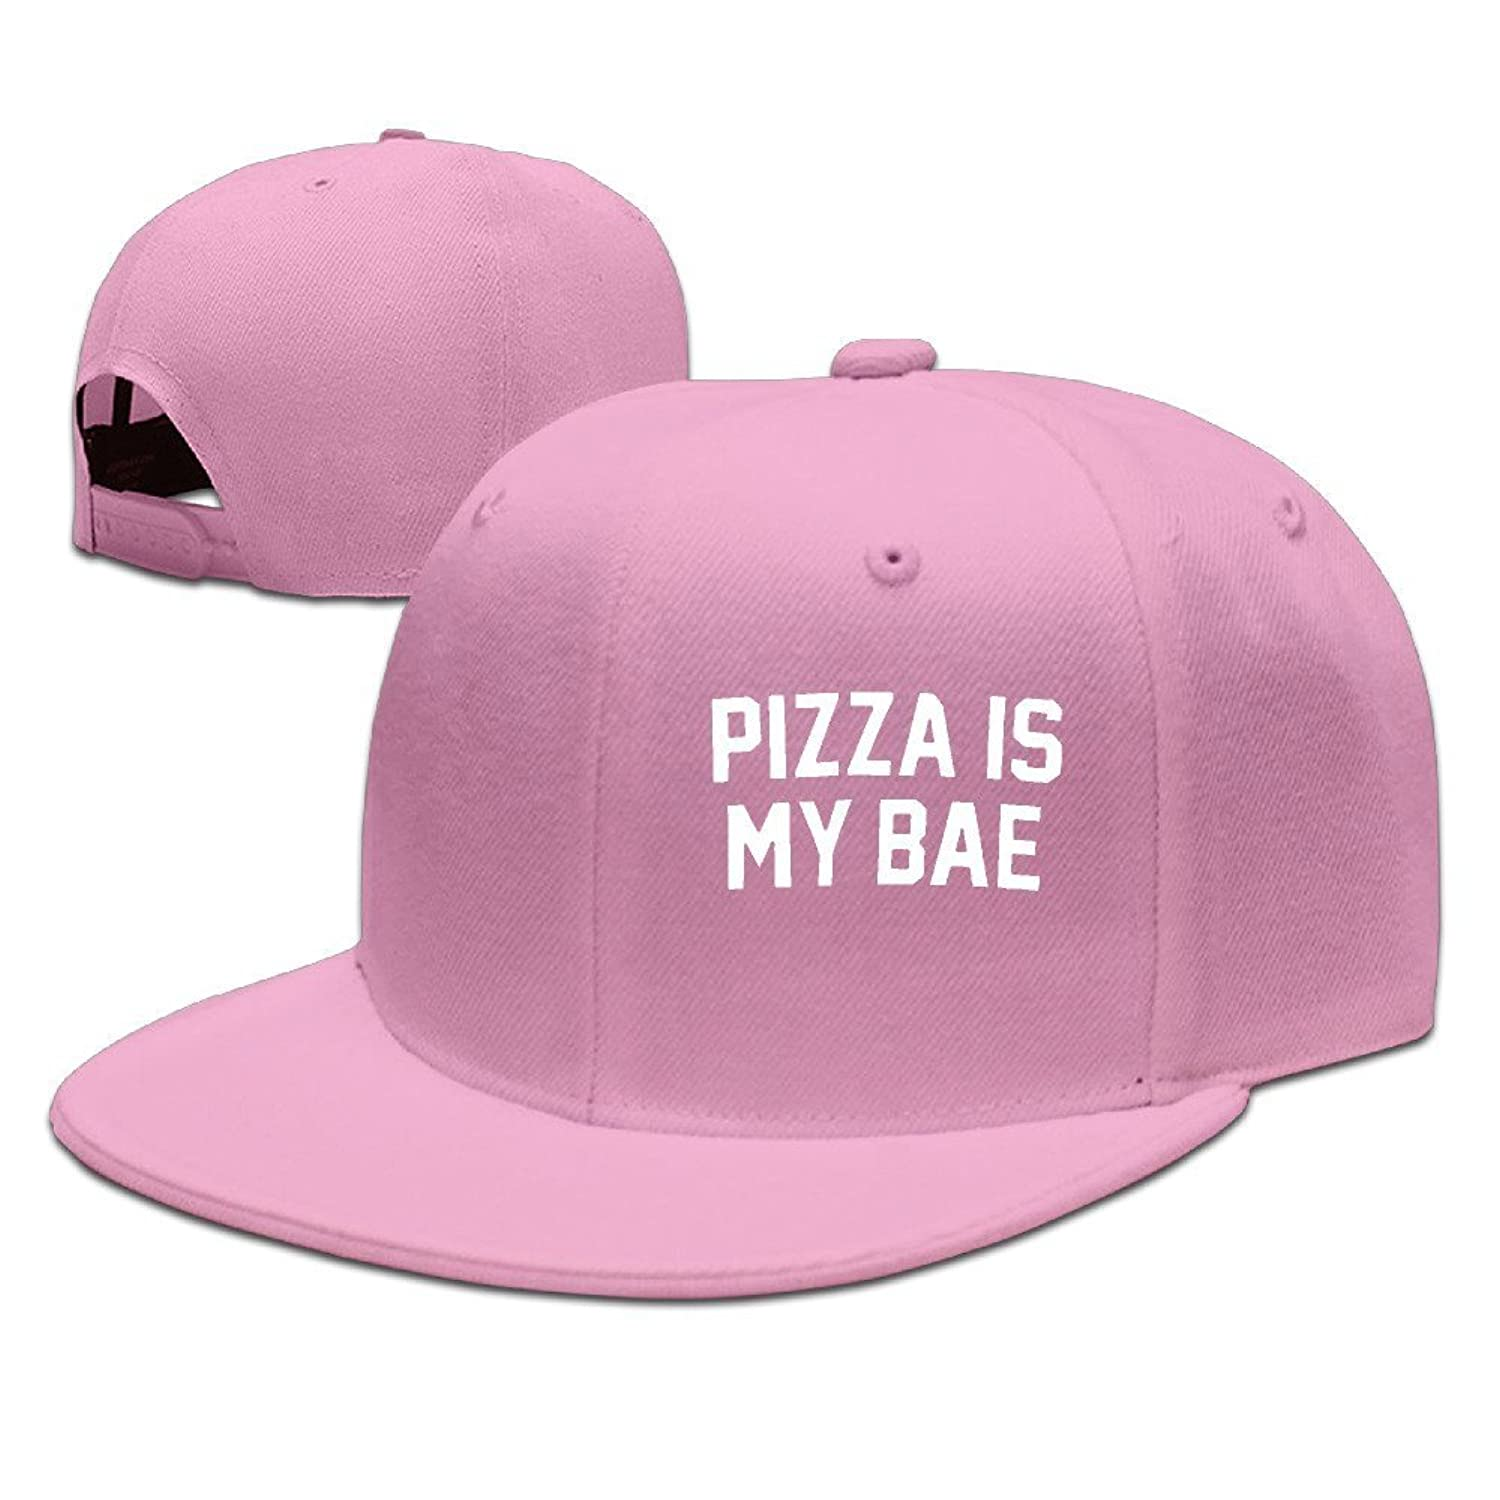 5f3468c584 Chic Have You Shop Pizza Is My Bae Style Visor Hats Cap Snapback Summer Hat  Pink